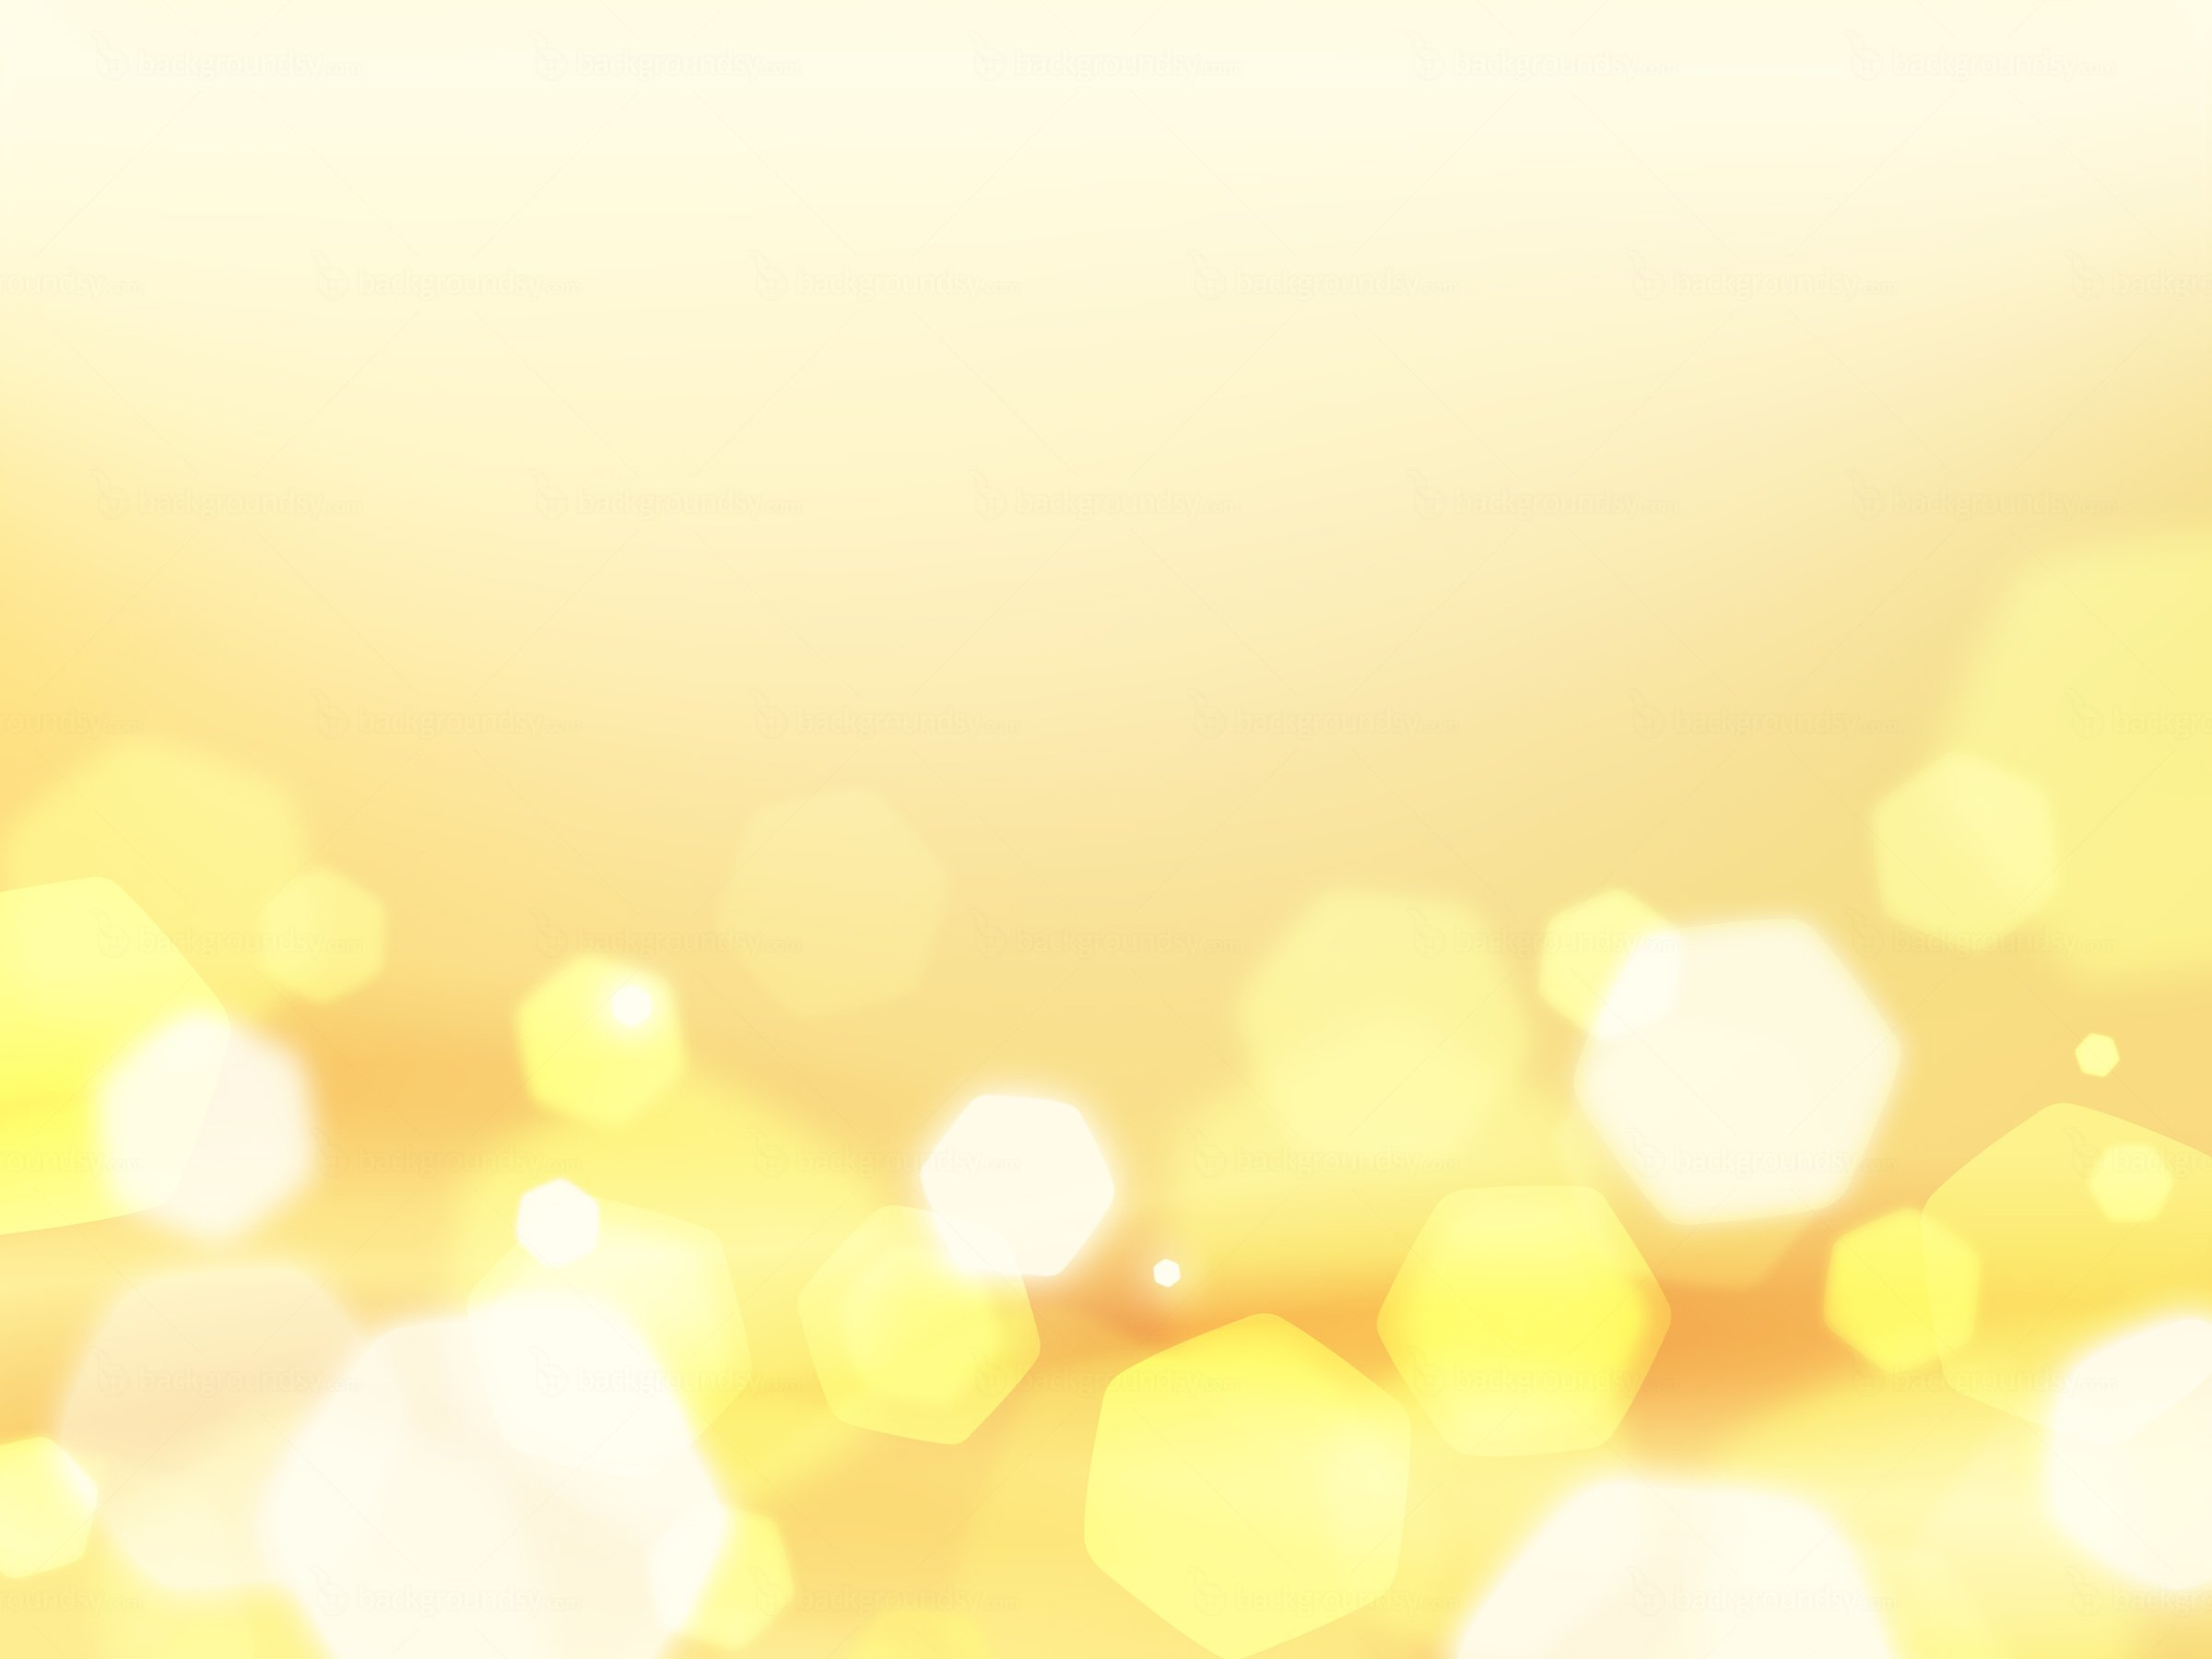 Light Yellow Background Wallpaper Yellow sparkles background 2400x1800